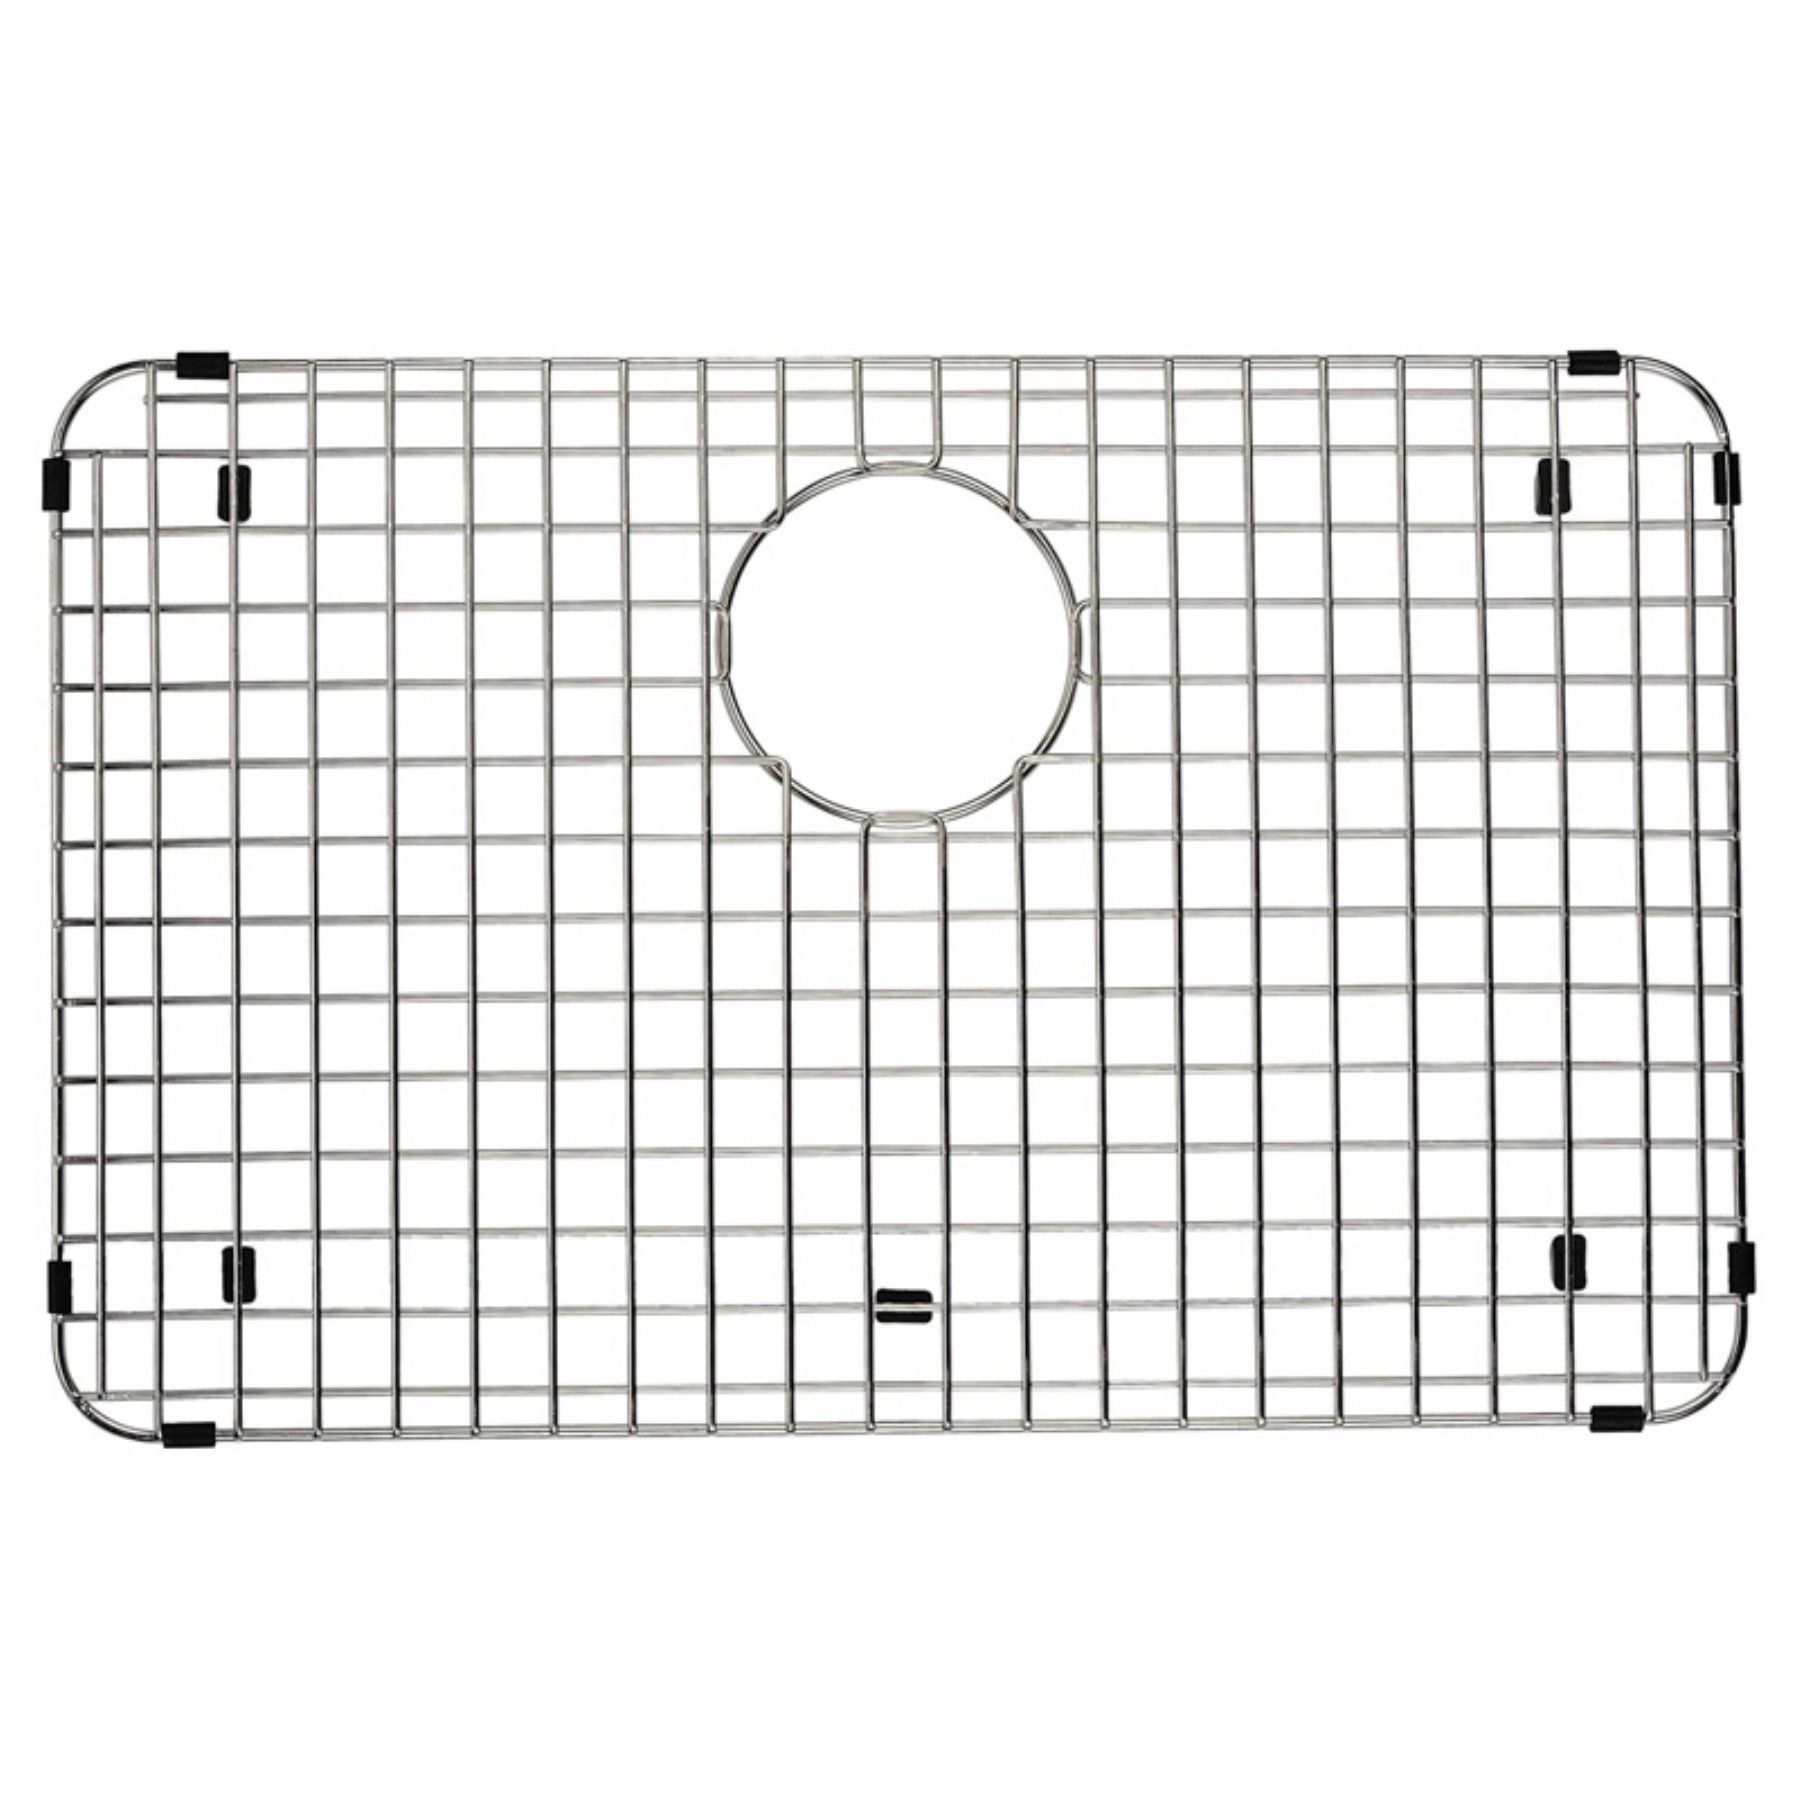 Dawn G610 Stainless Steel Kitchen Sink Grid   G610